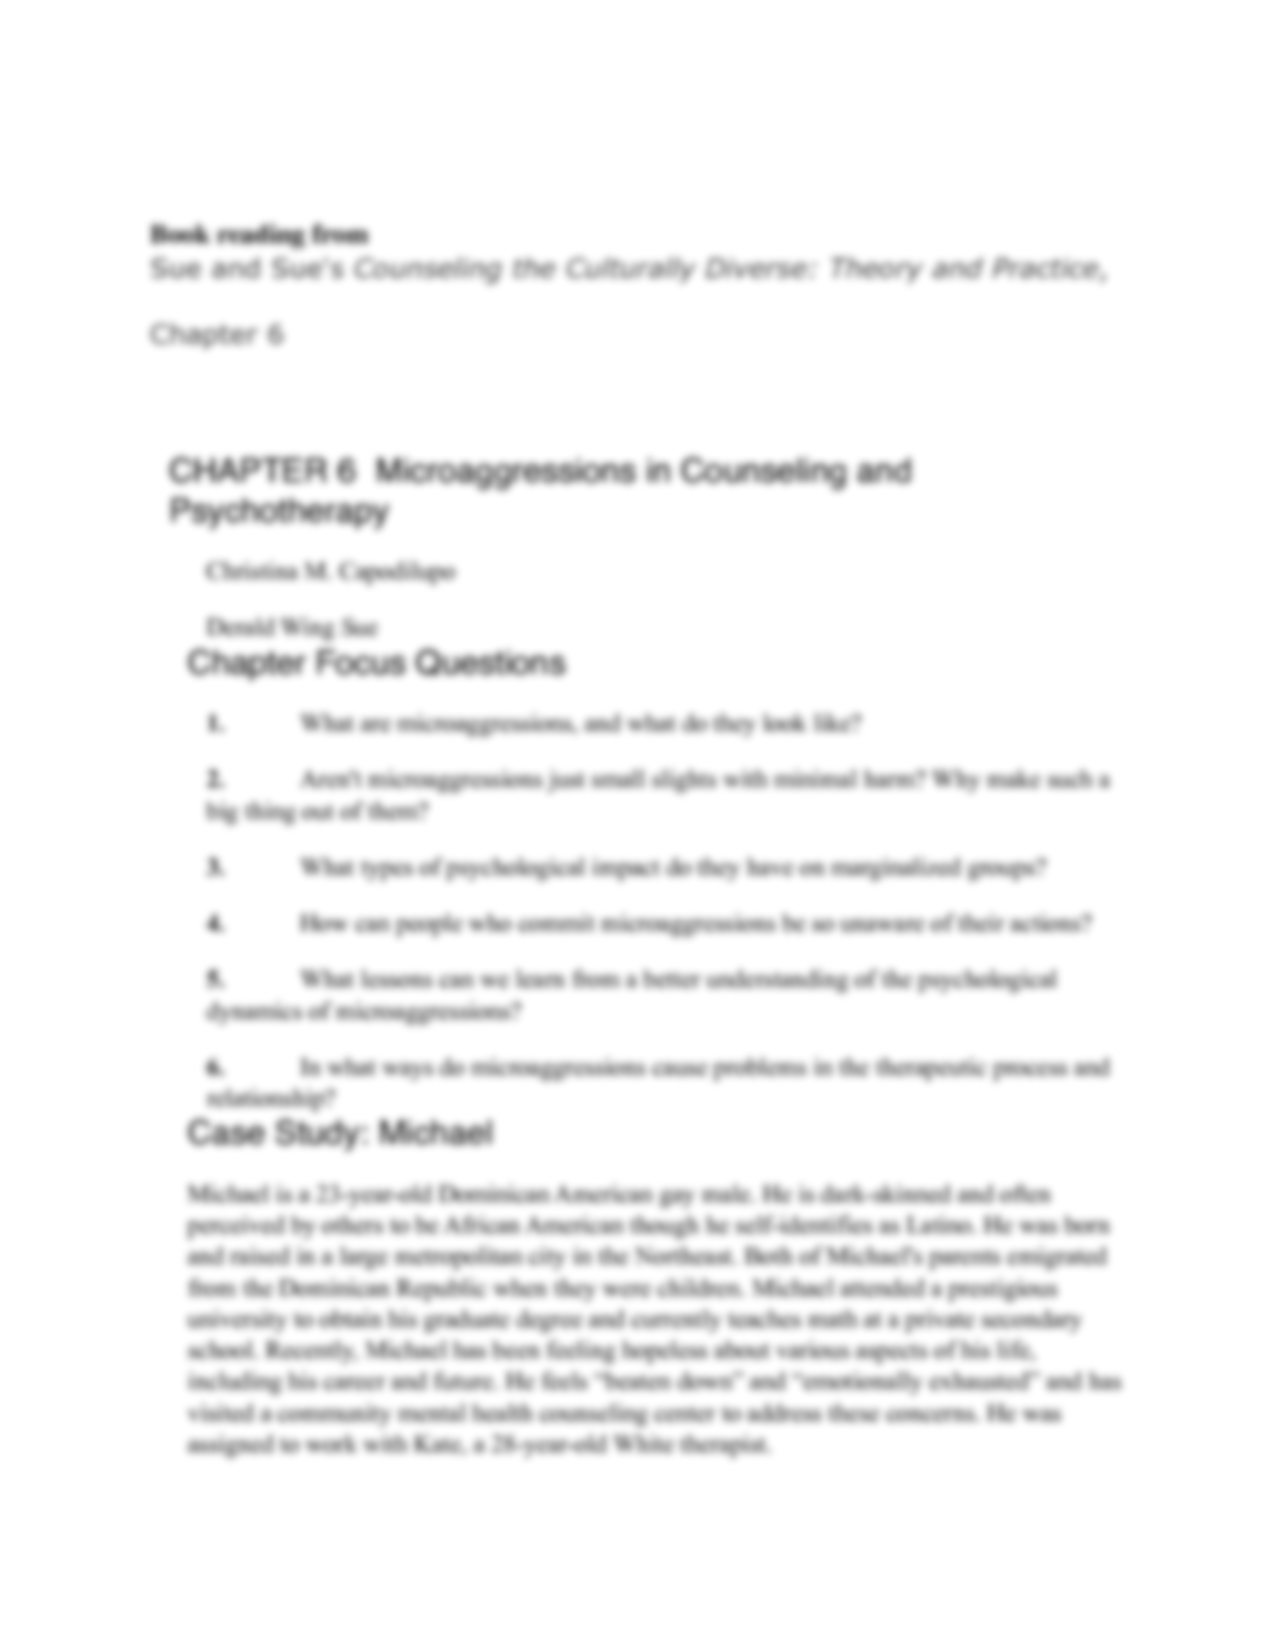 Oil gas dissertation abstracts